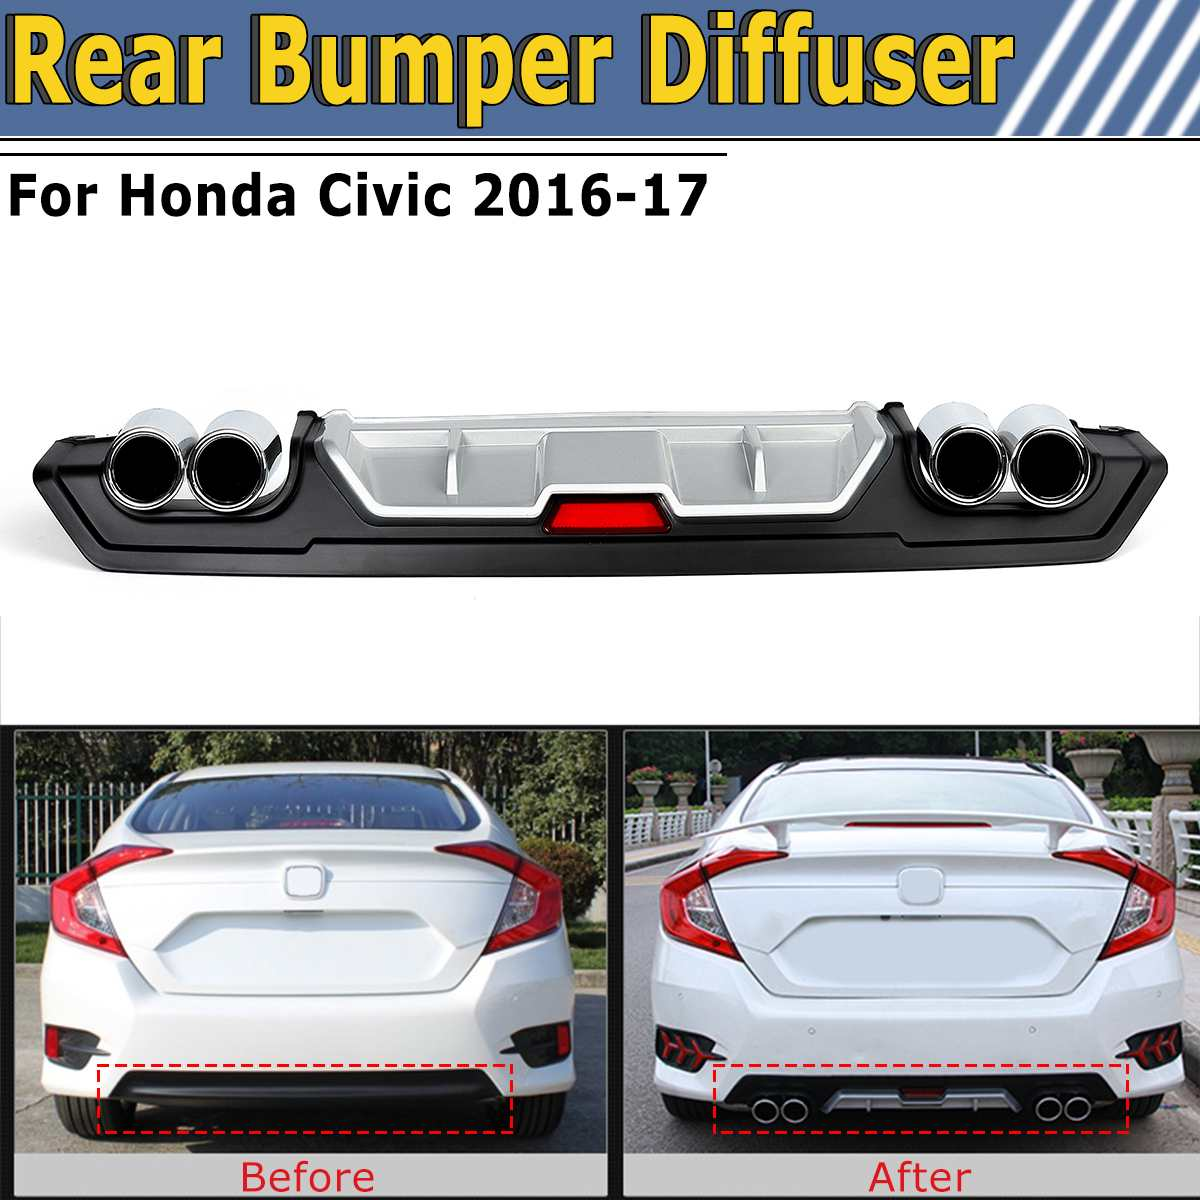 Rear Lower Bumper Diffuser Lip Cover with Dual ABS Special Outlet Pipe Exhaust Decor For Honda For Civic 2016-2017Rear Lower Bumper Diffuser Lip Cover with Dual ABS Special Outlet Pipe Exhaust Decor For Honda For Civic 2016-2017